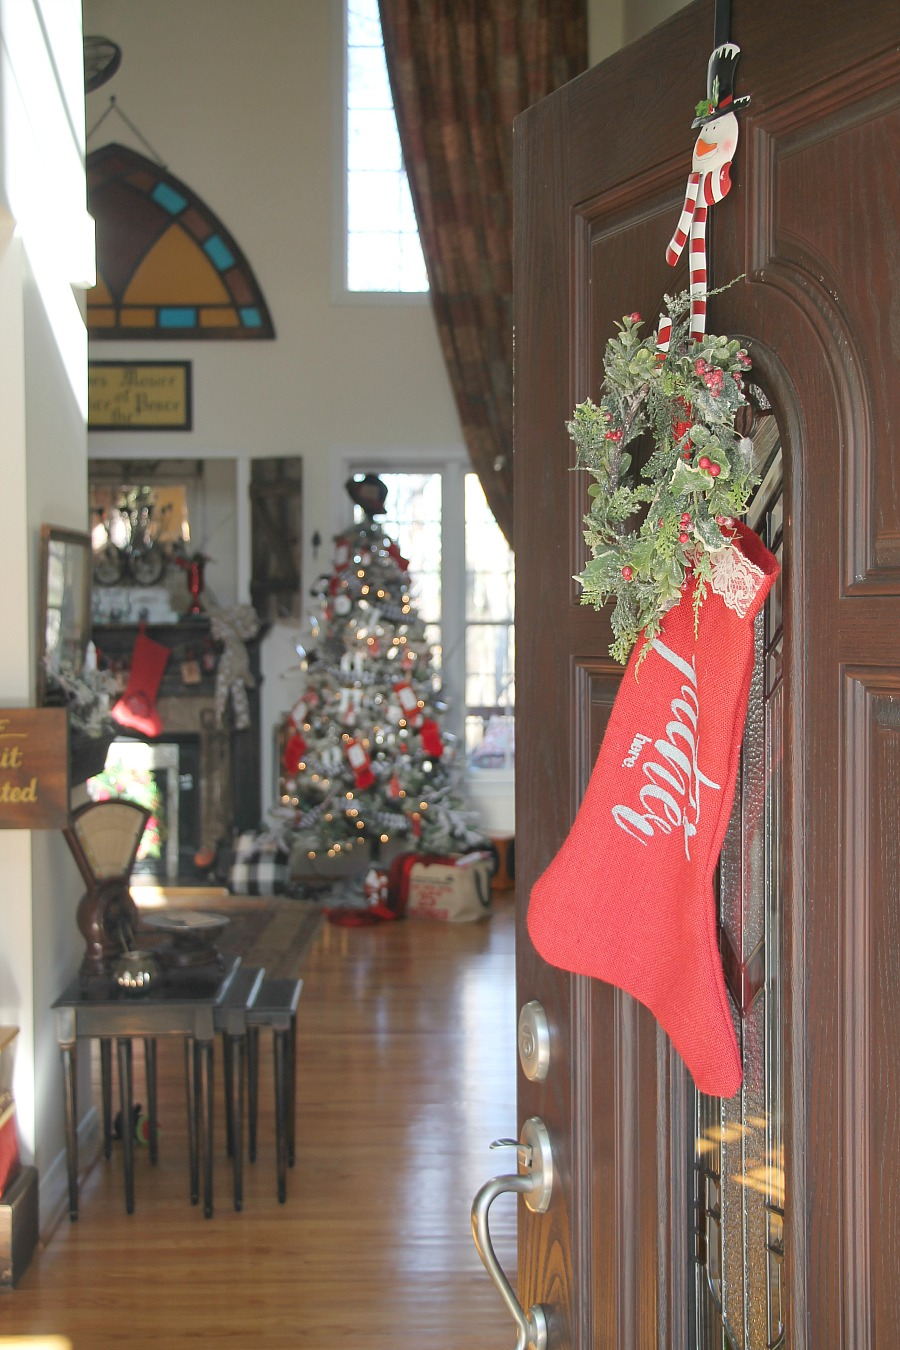 Decorating with red white and black for christmas debbiedoos welcoming greeting for the holiday kristyandbryce Images